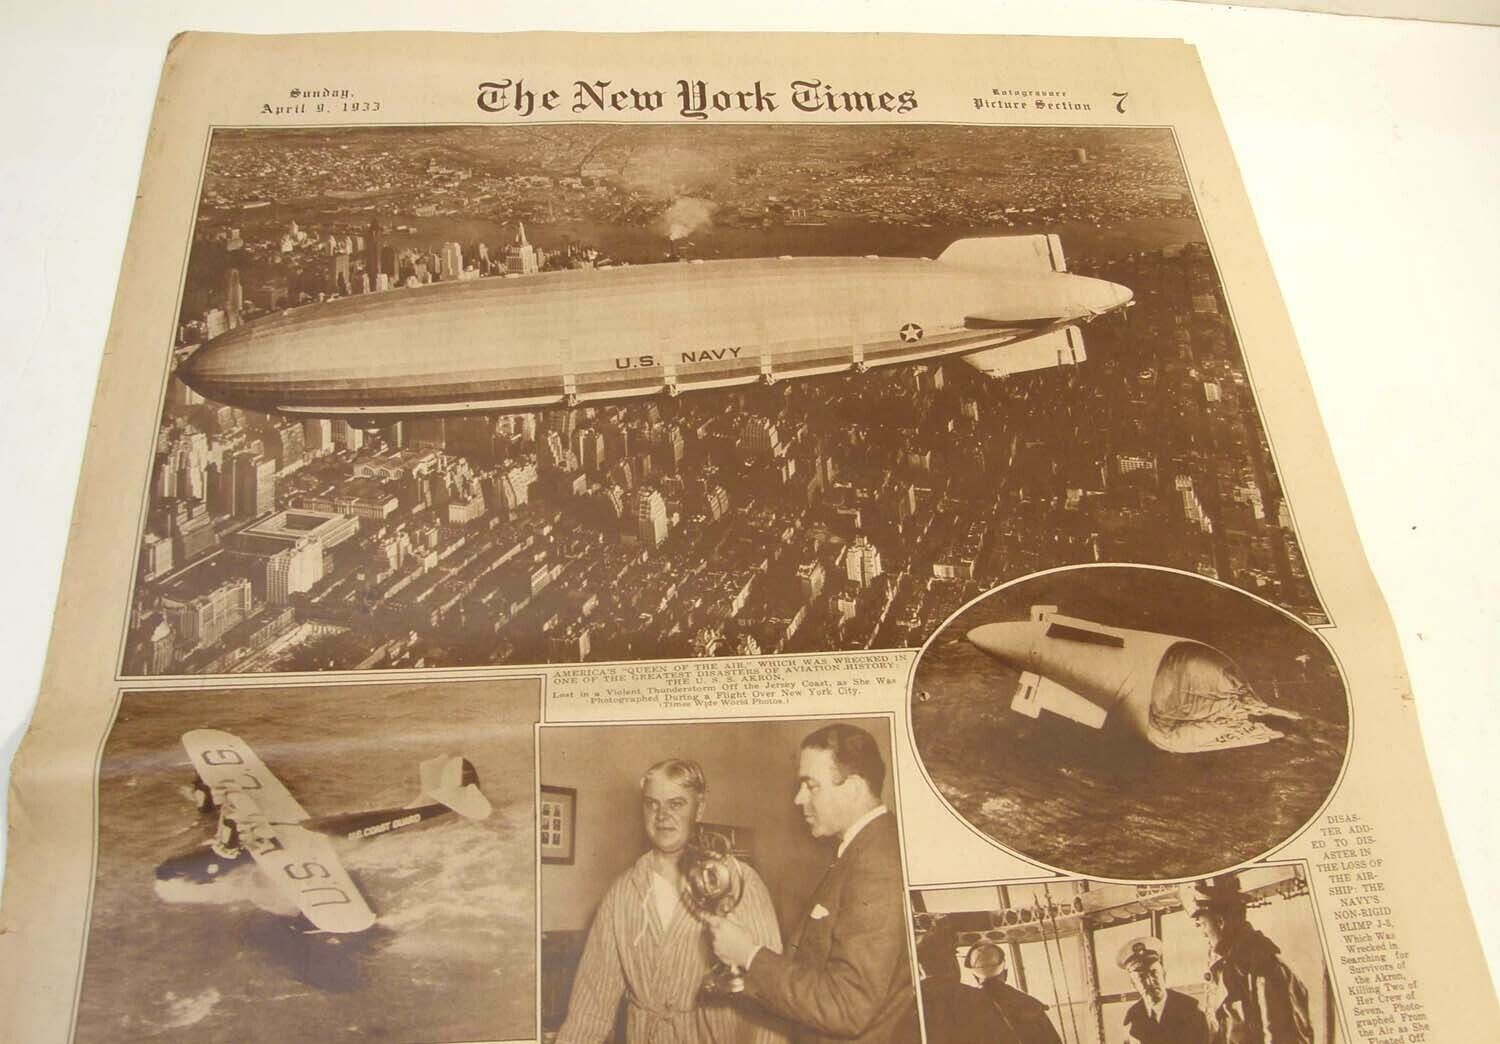 4/9 1933 NY TIMES ROTOGRAVURE PICTURE SECTION USS AKRON AIRSHIP DISASTER PHOTOS